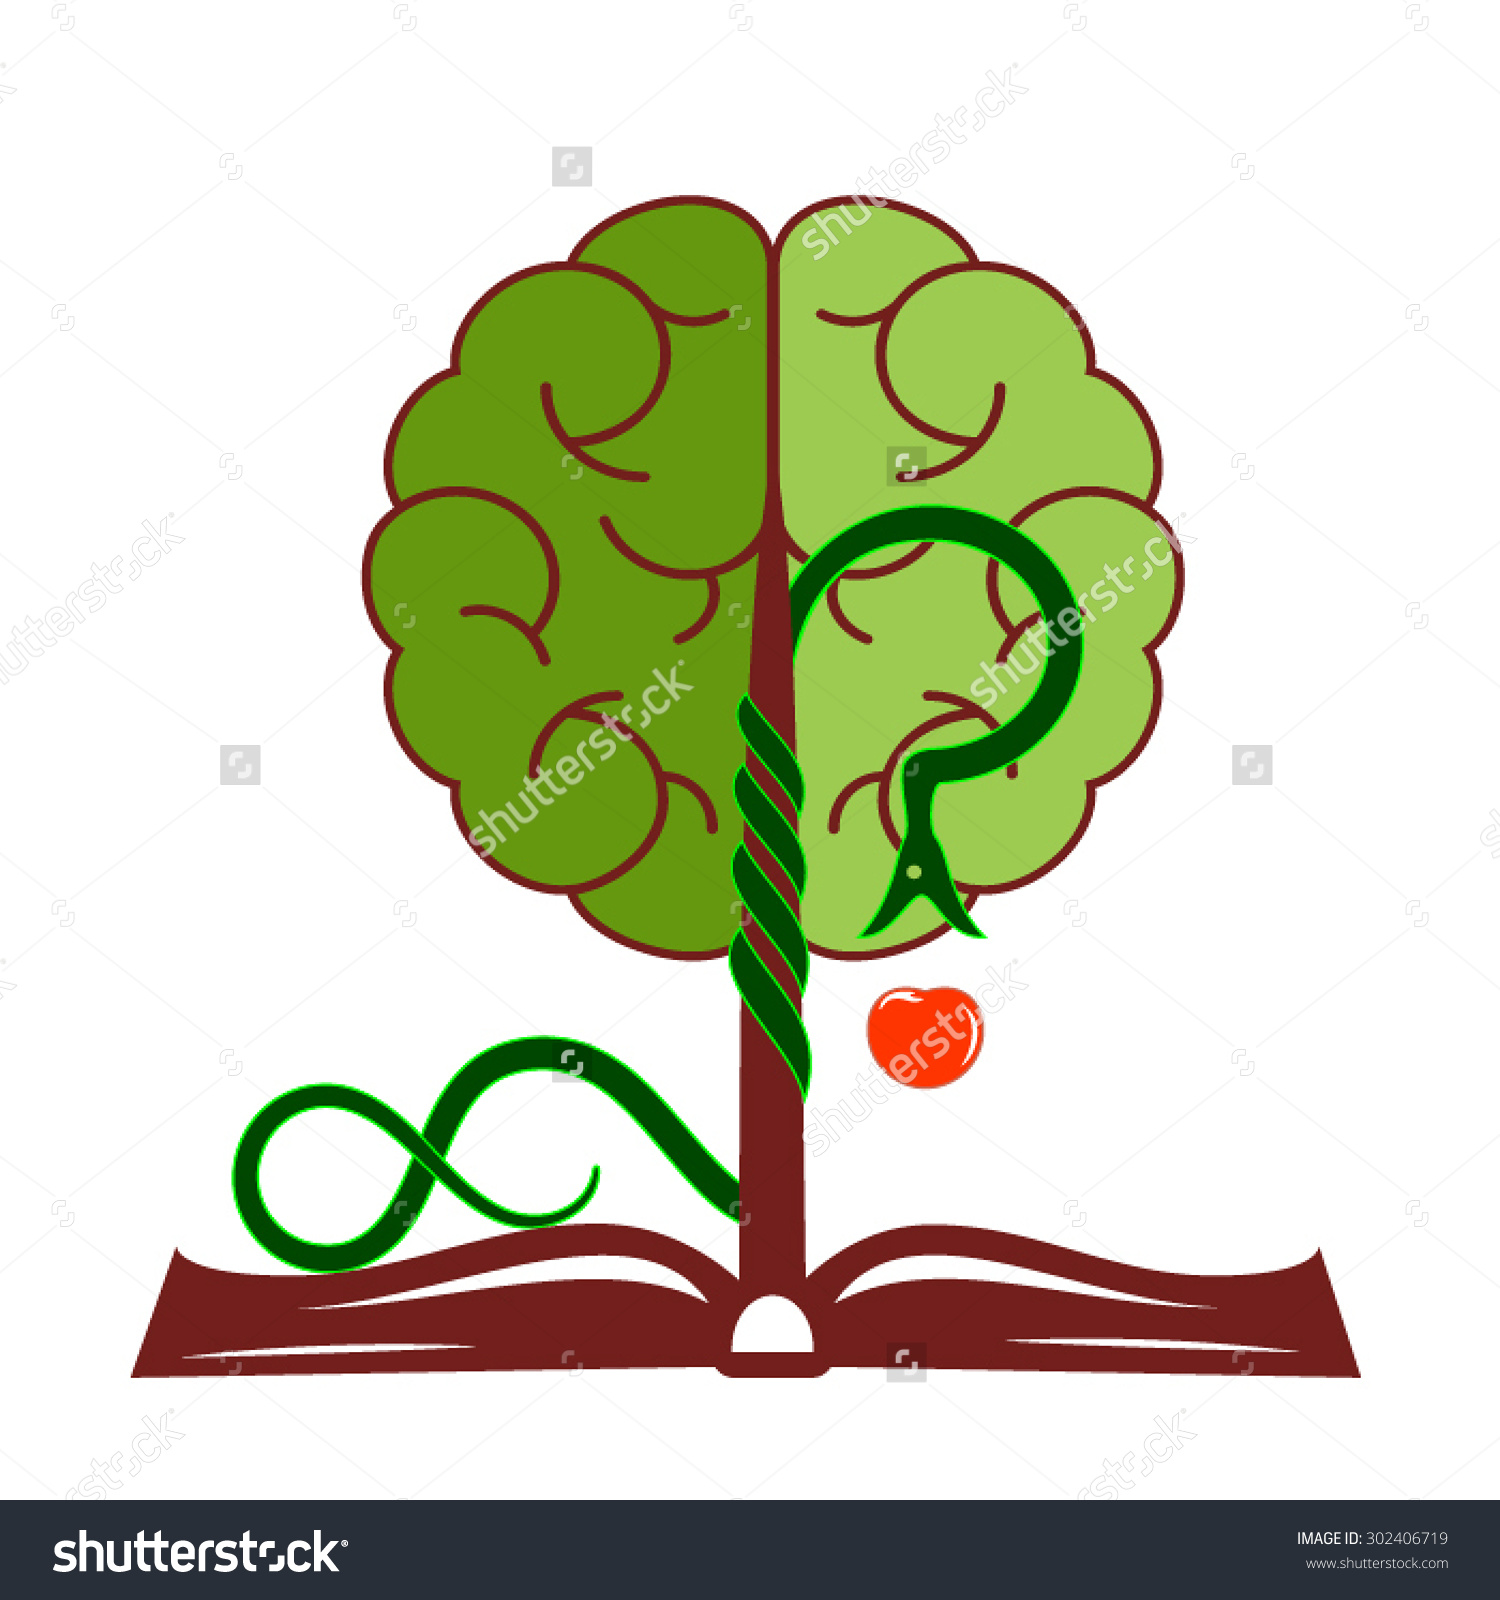 Tree Of Knowledge With Foliage In The Form Of A Brain, Growing.